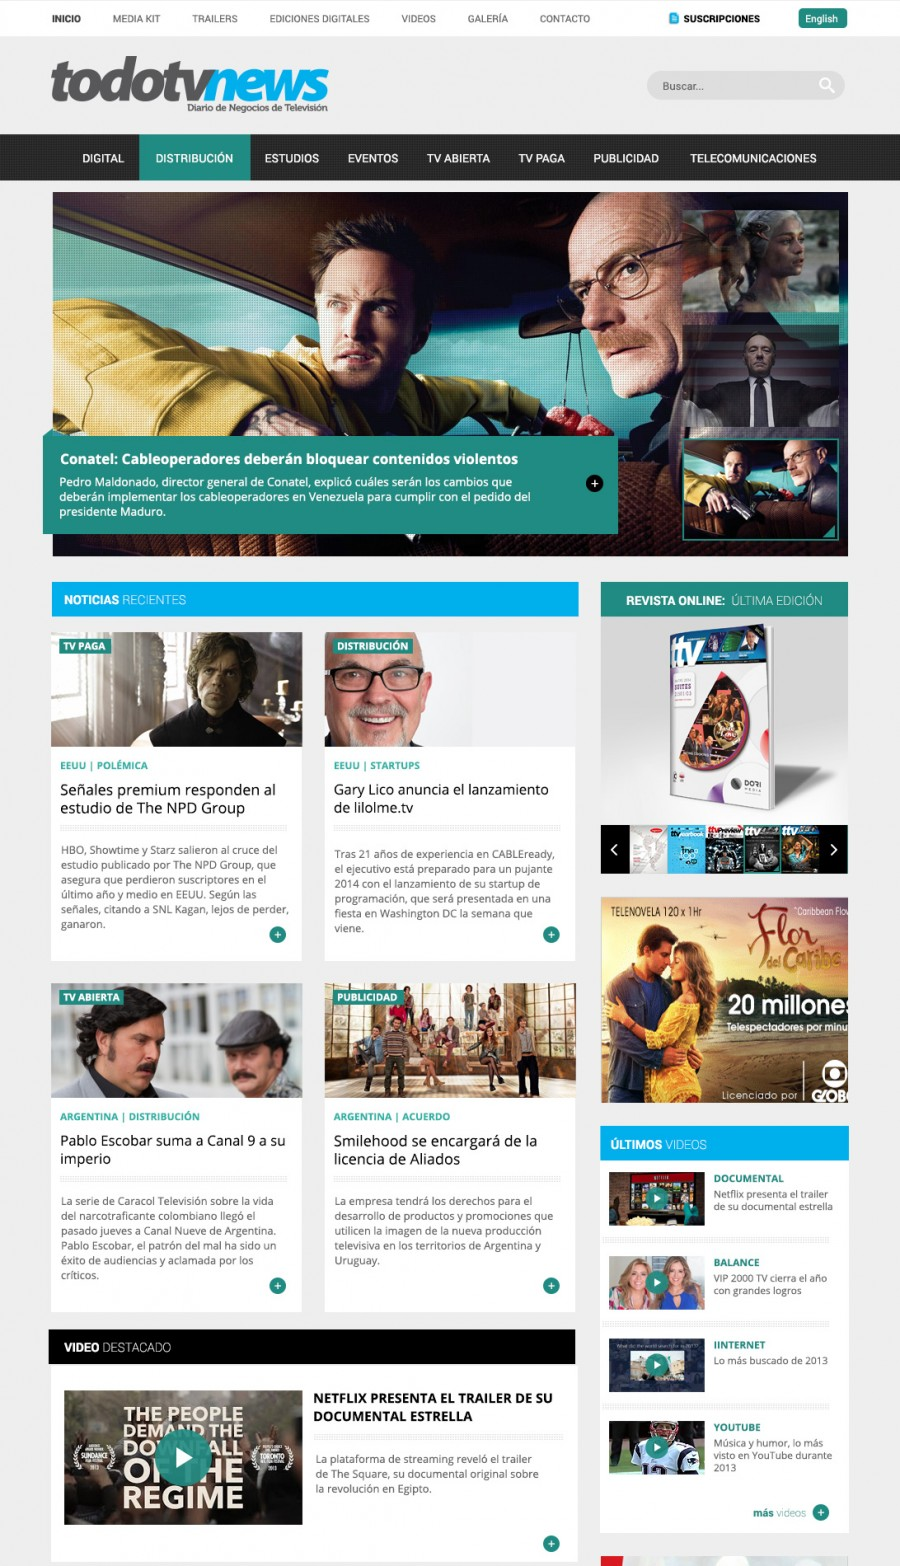 ttv news homepage design